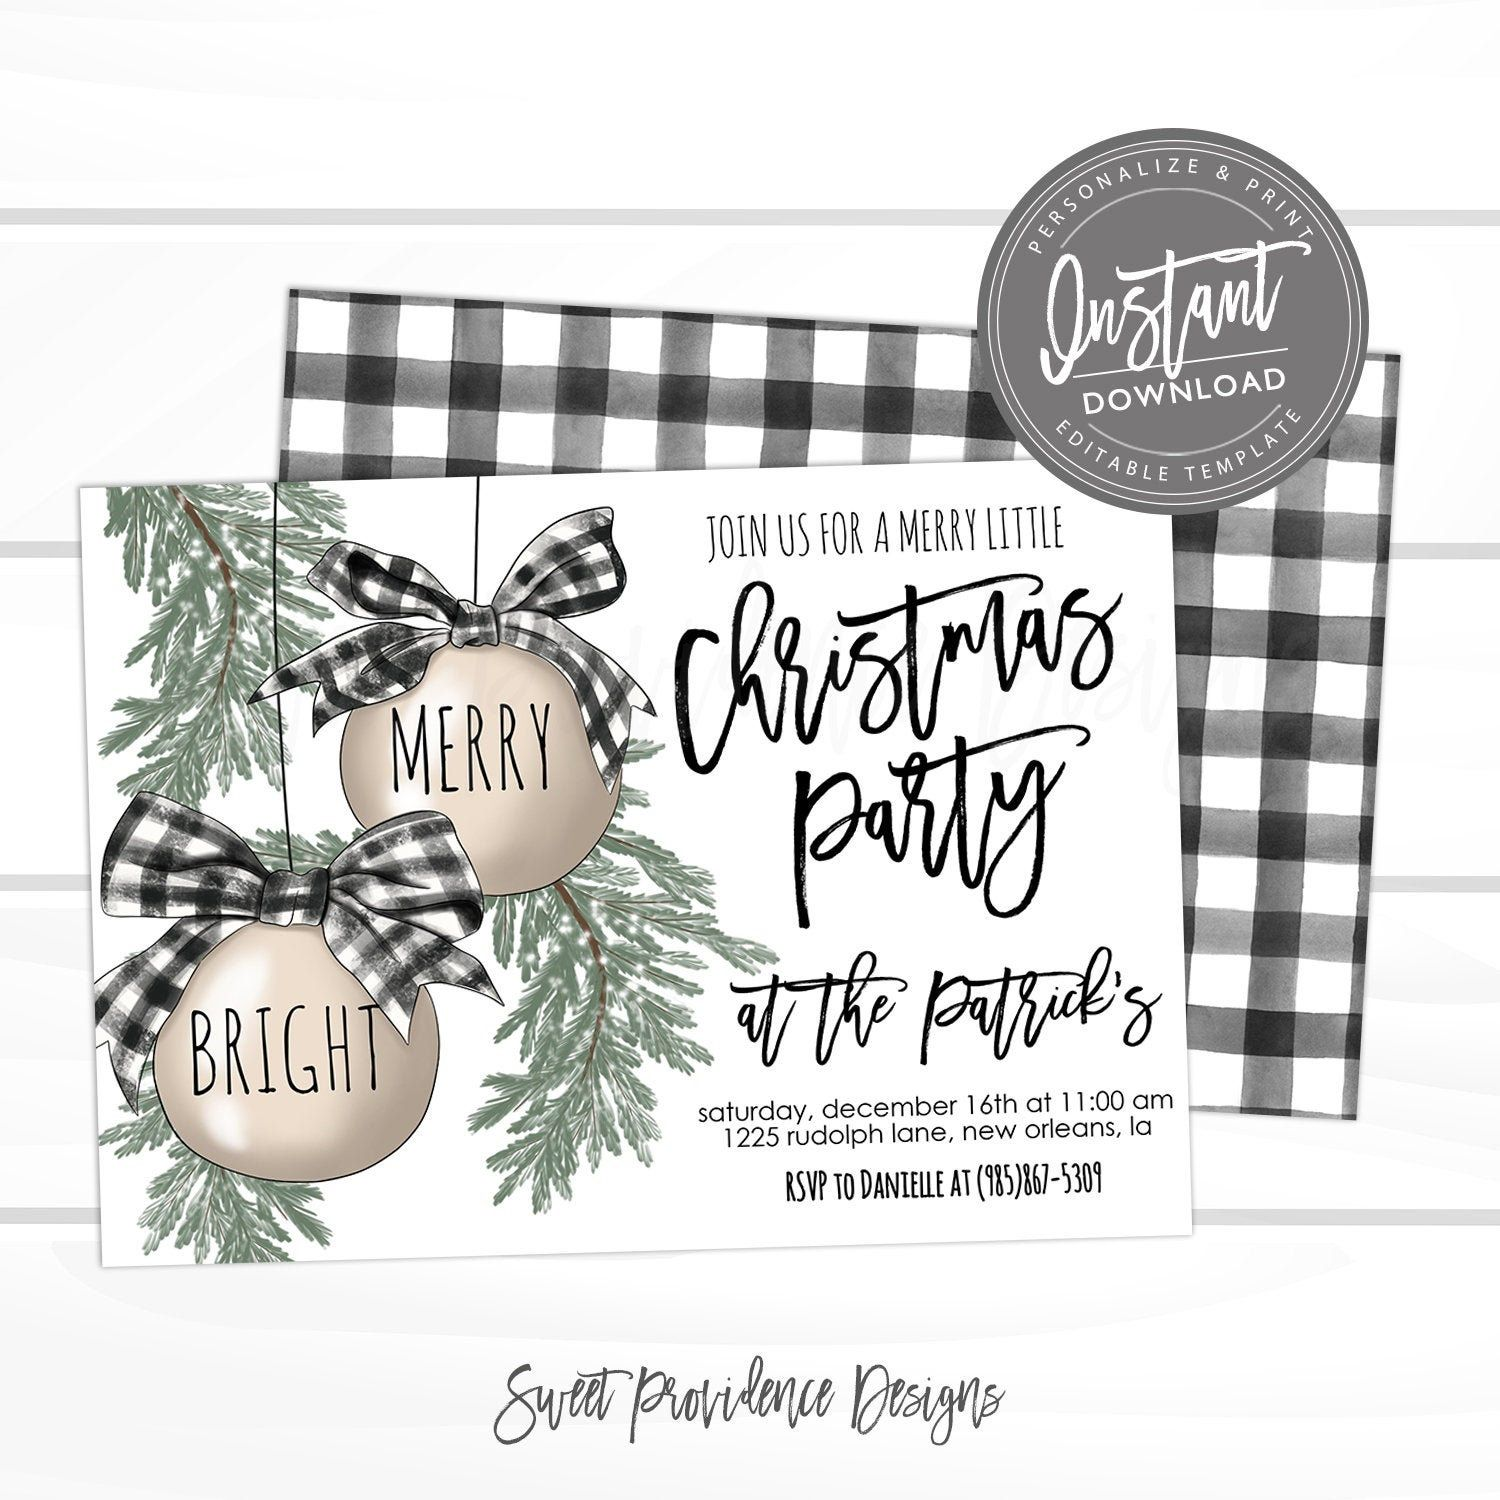 Christmas Invitation Christmas Bells Editable Christmas Party Template Merry And Bright Christmas Invite Buffalo Plaid Instant Access Sweet Providence De Christmas Bridal Shower Invitations Christmas Bridal Showers Bridal Shower Invitations